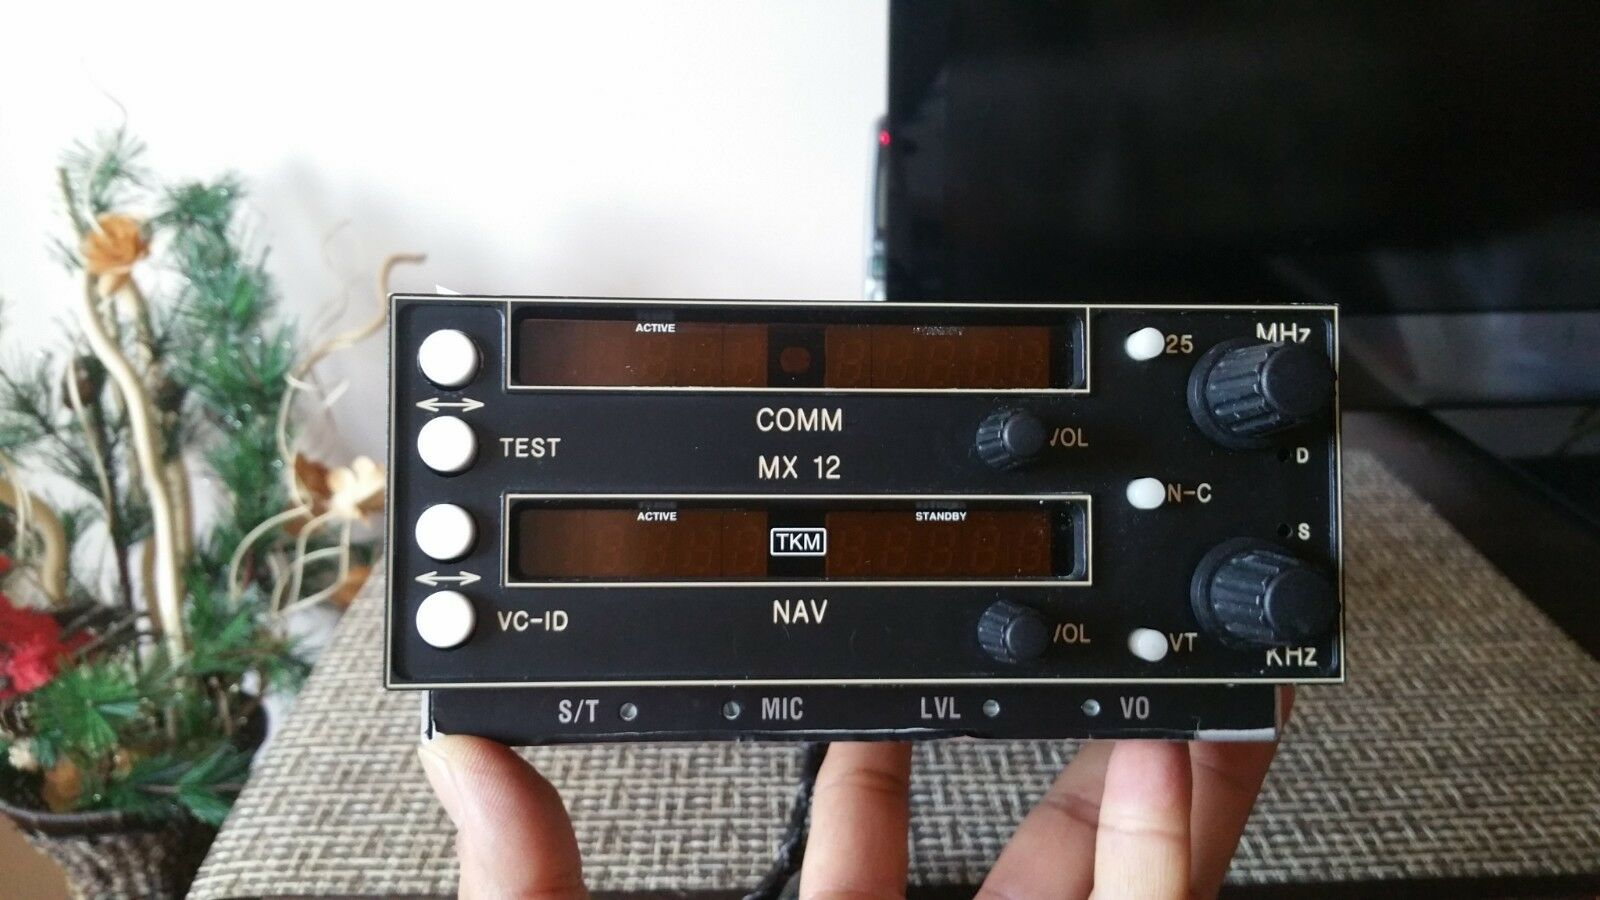 TKM MX12 NAV/COMM 28 VDC P/N MX 12 WITH FAA FORM 8130-3 FROM BEVAN RABELL